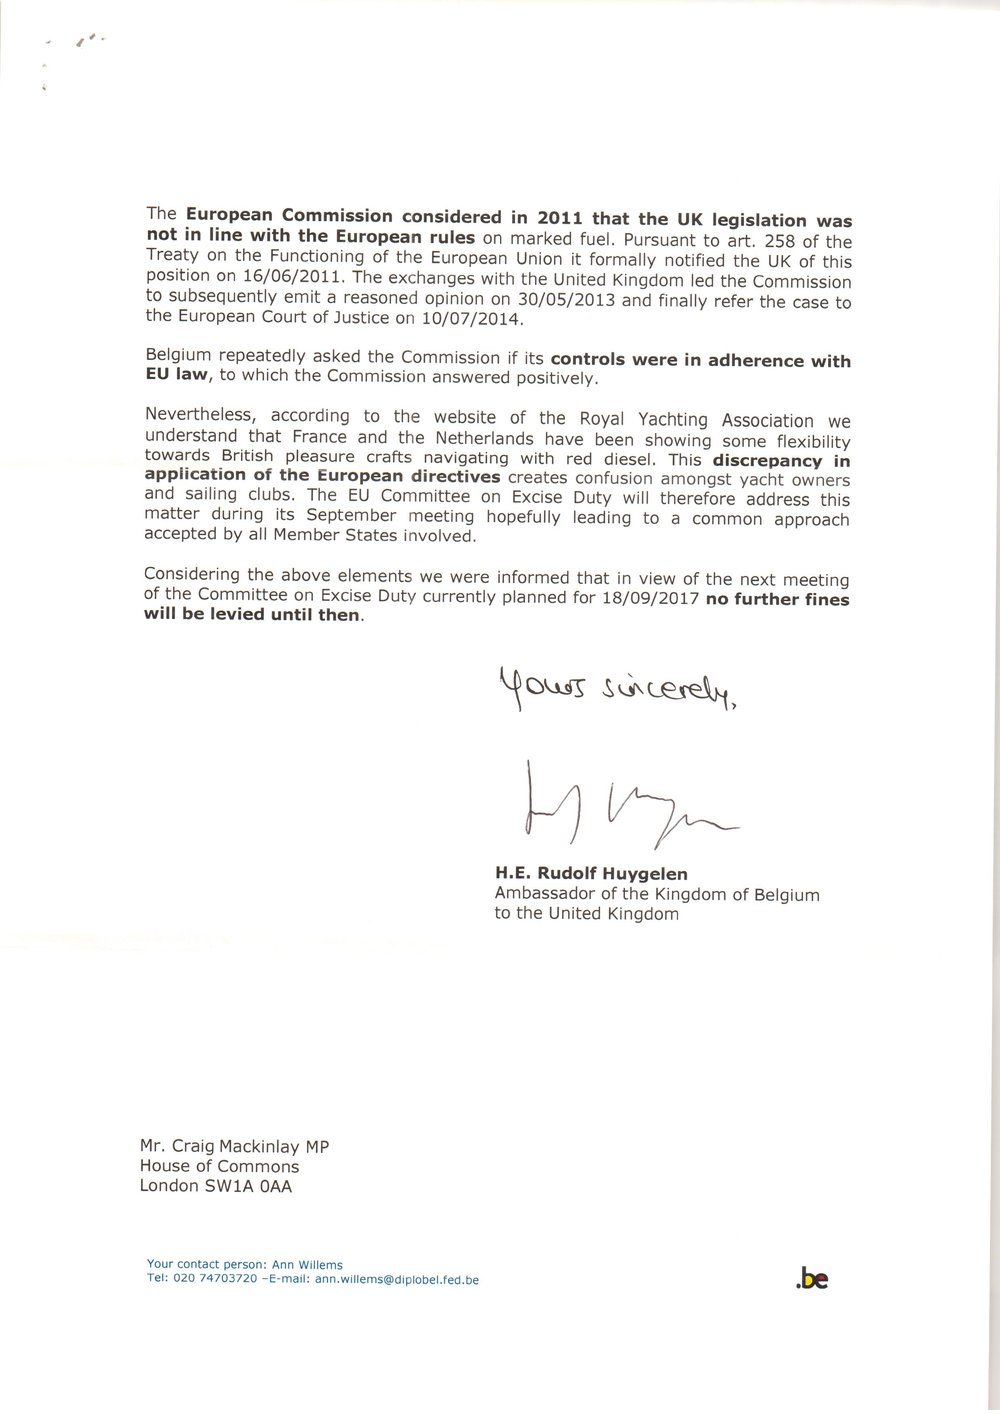 Belgian Ambassador's reply of 27 July17 Part 2.jpg